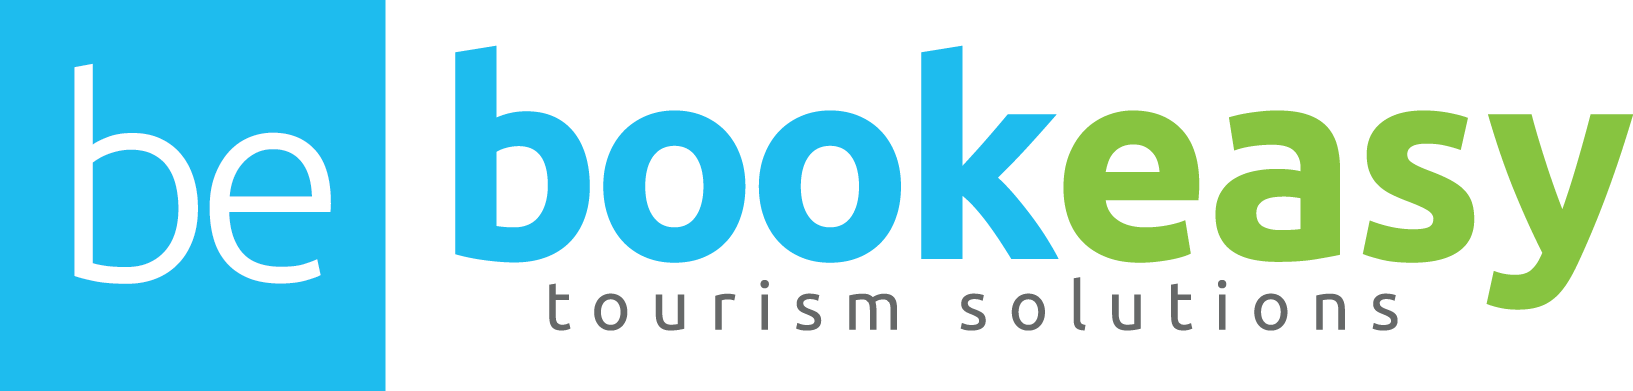 Bookeasy connection to Booking Boss via Livn.